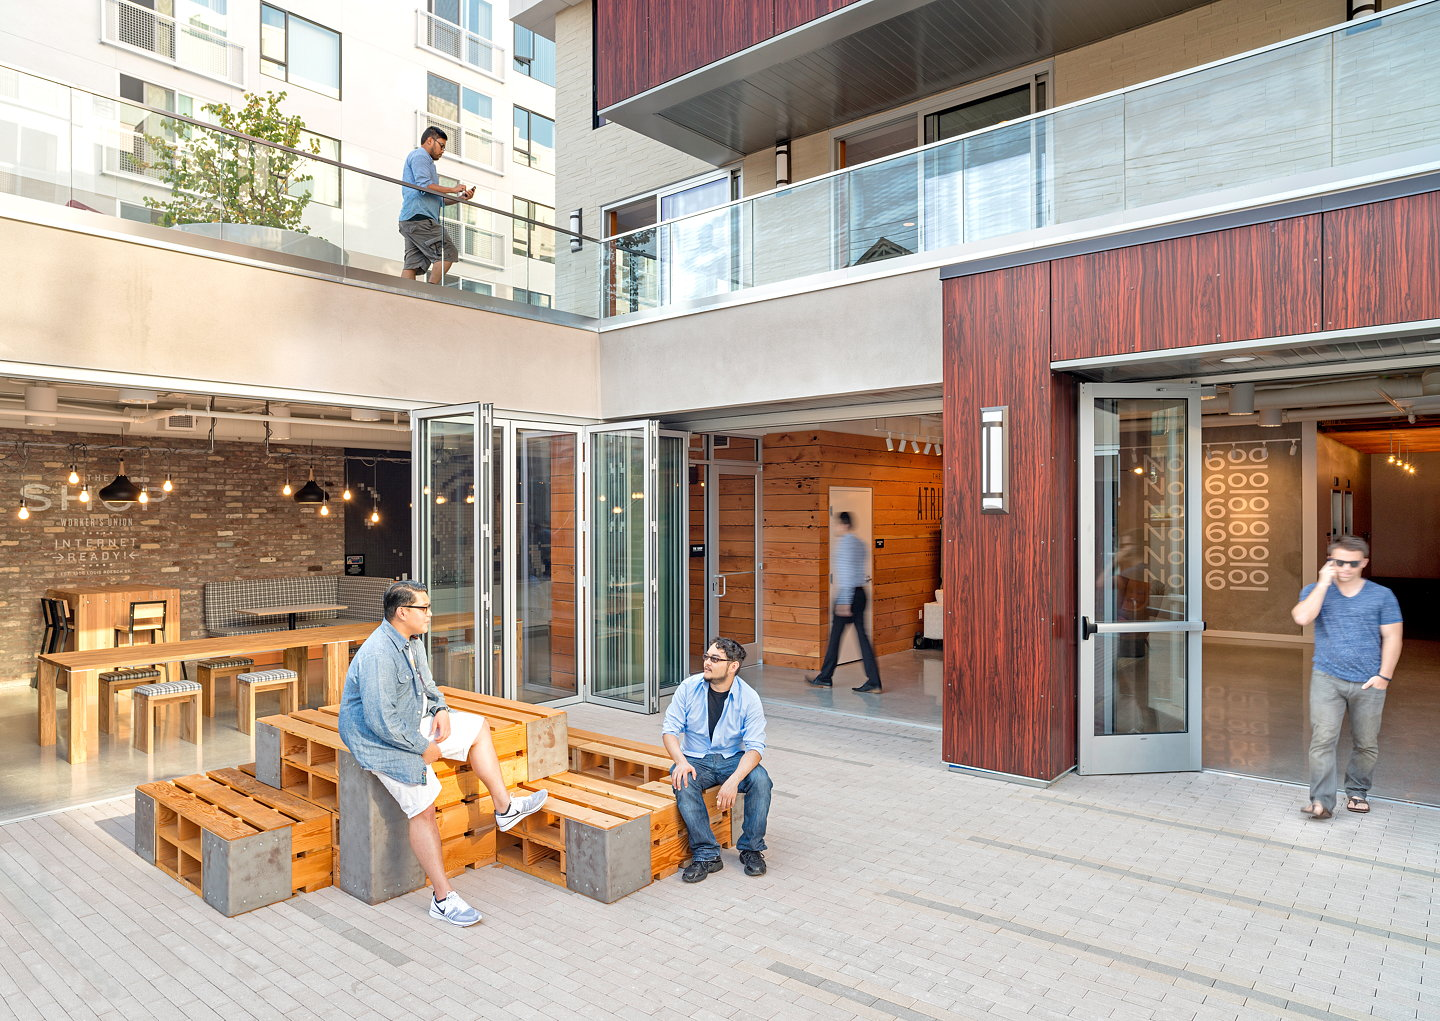 VARA A New Housing Project in San Francisco by Studio OA